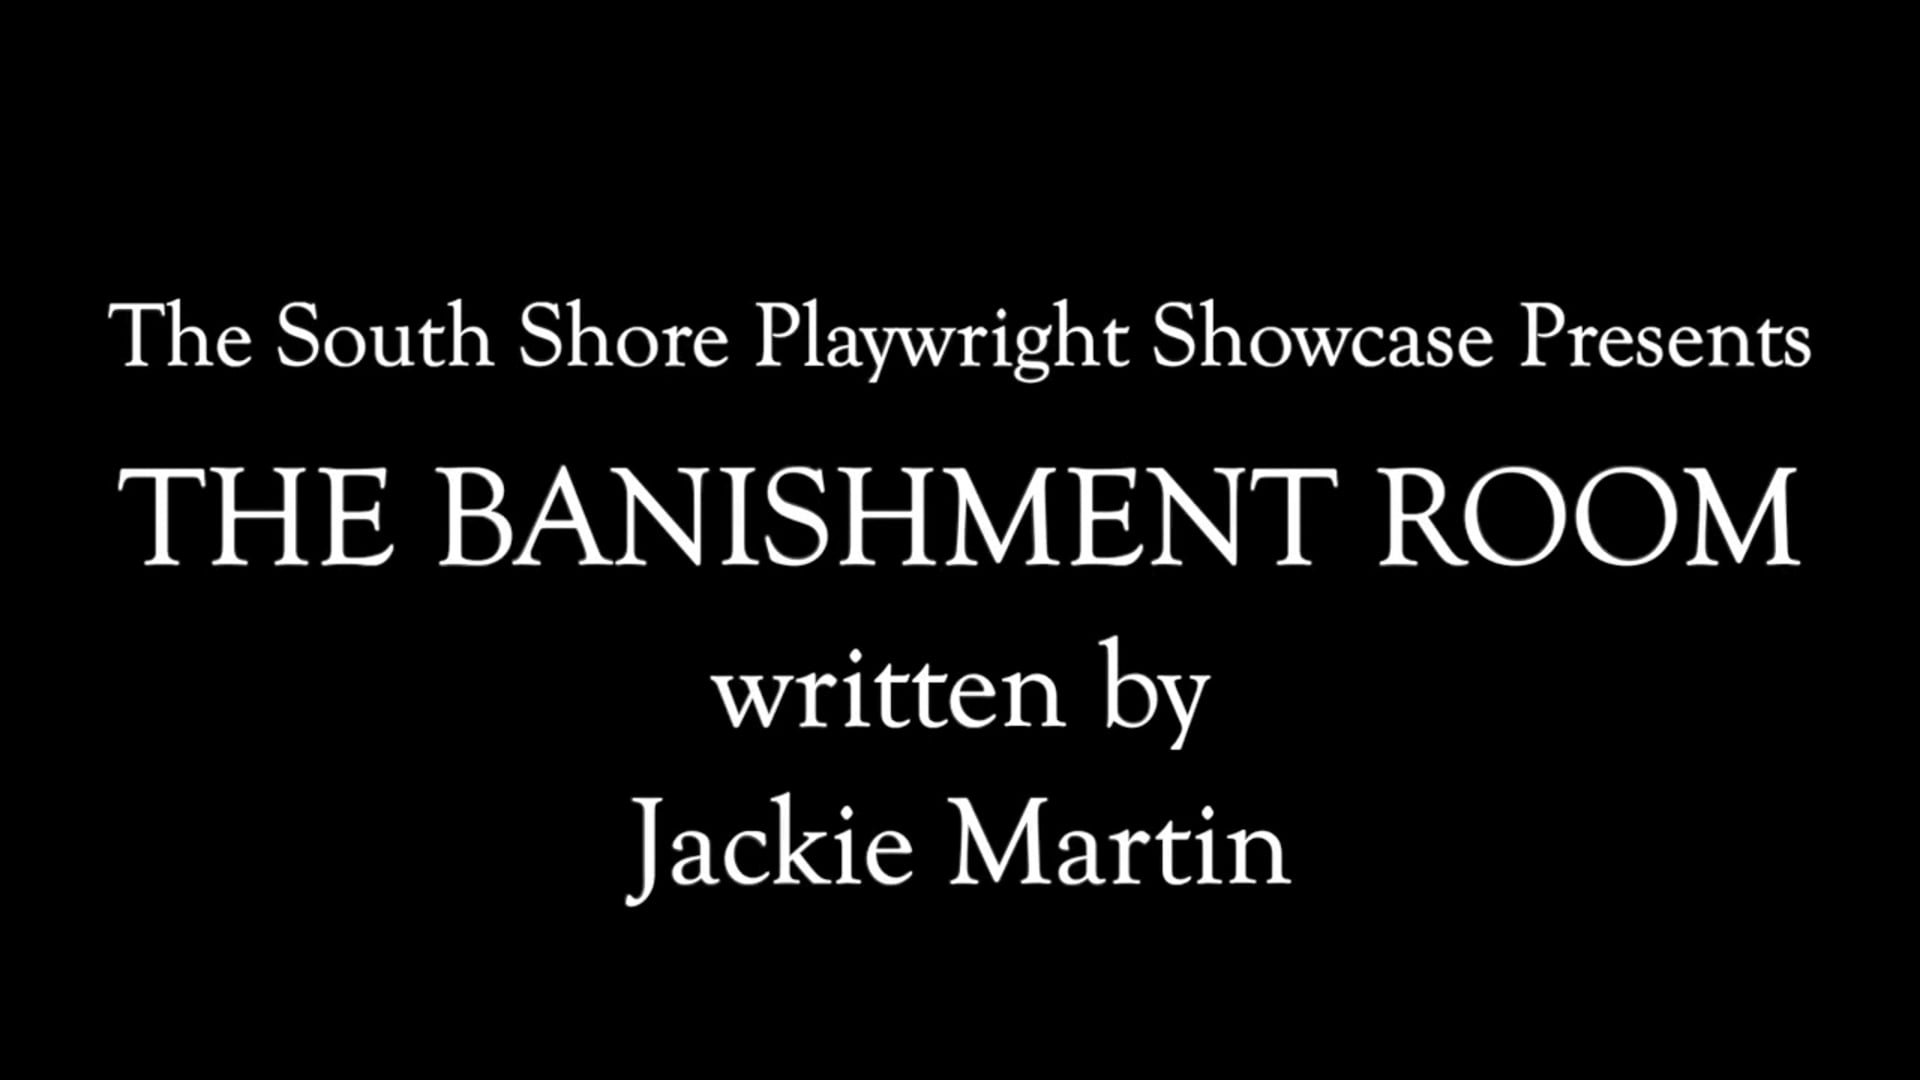 The Banishment Room by Jackie Martin (South Shore Playwright Showcase Presents)